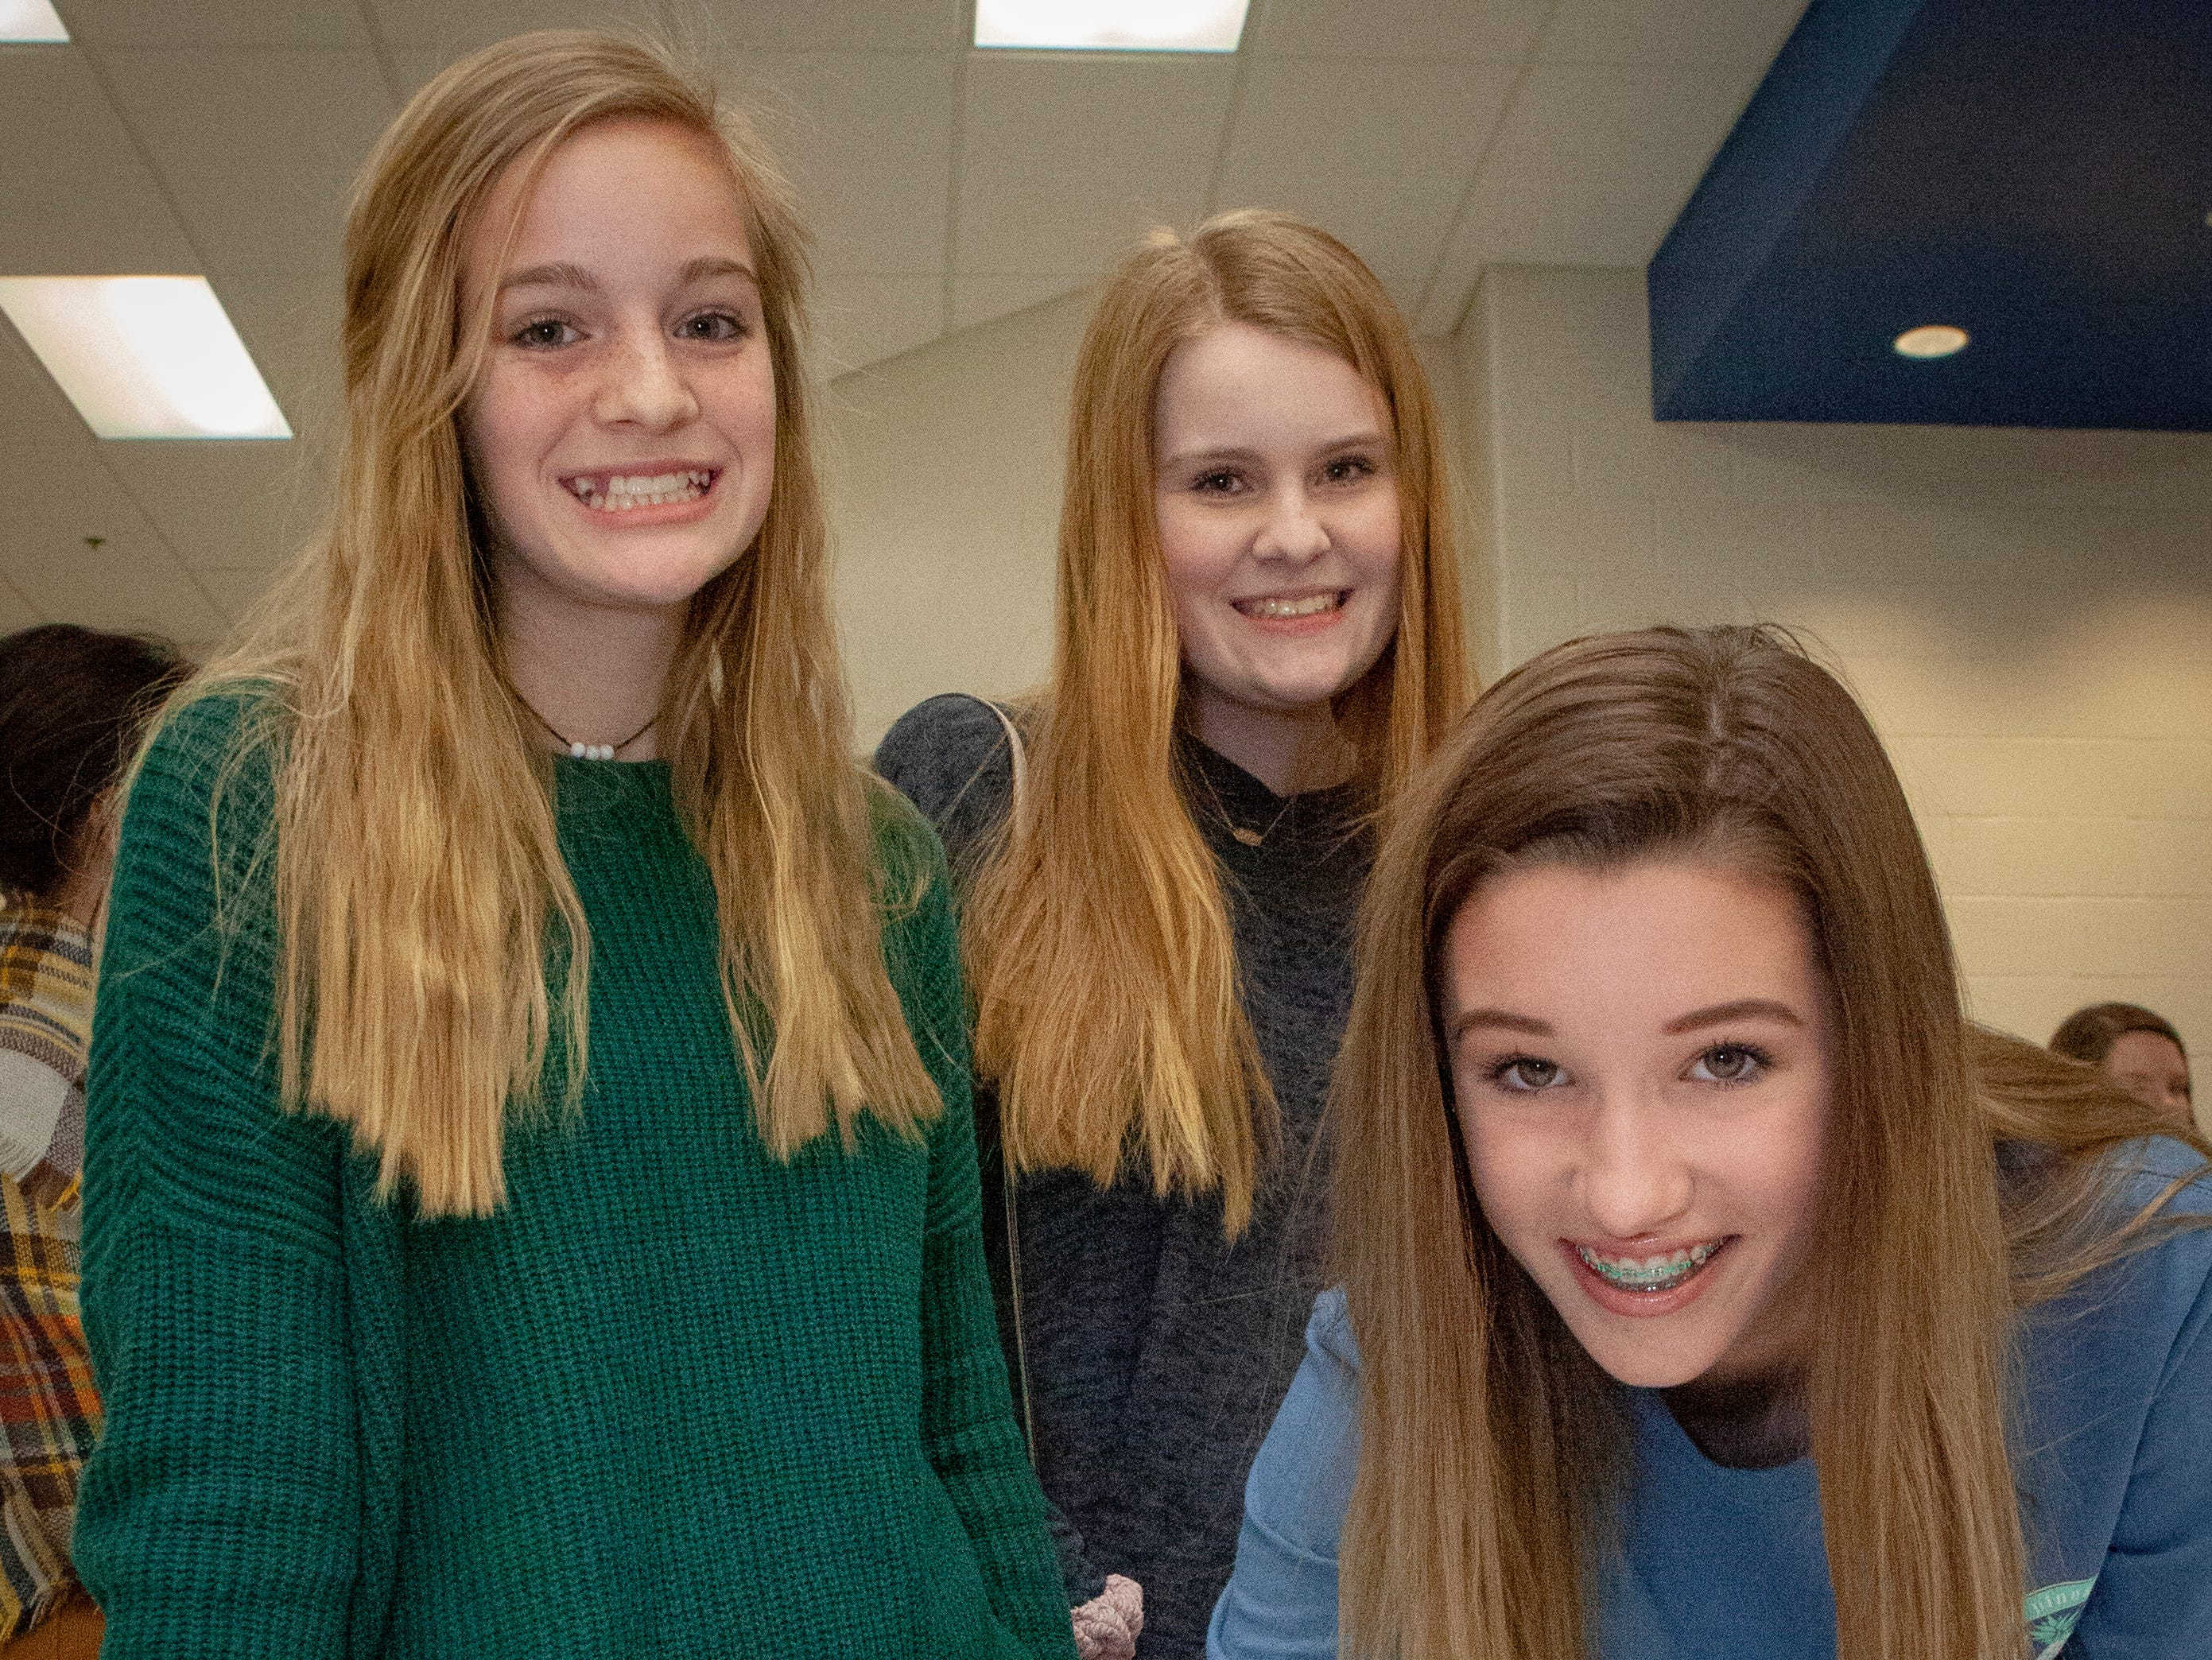 Incoming freshmen, from left, Chloe Morrison, Lydia Morrison and Taylor sign up for the soccer team at the Rockvale High School open house March 7, 2019.